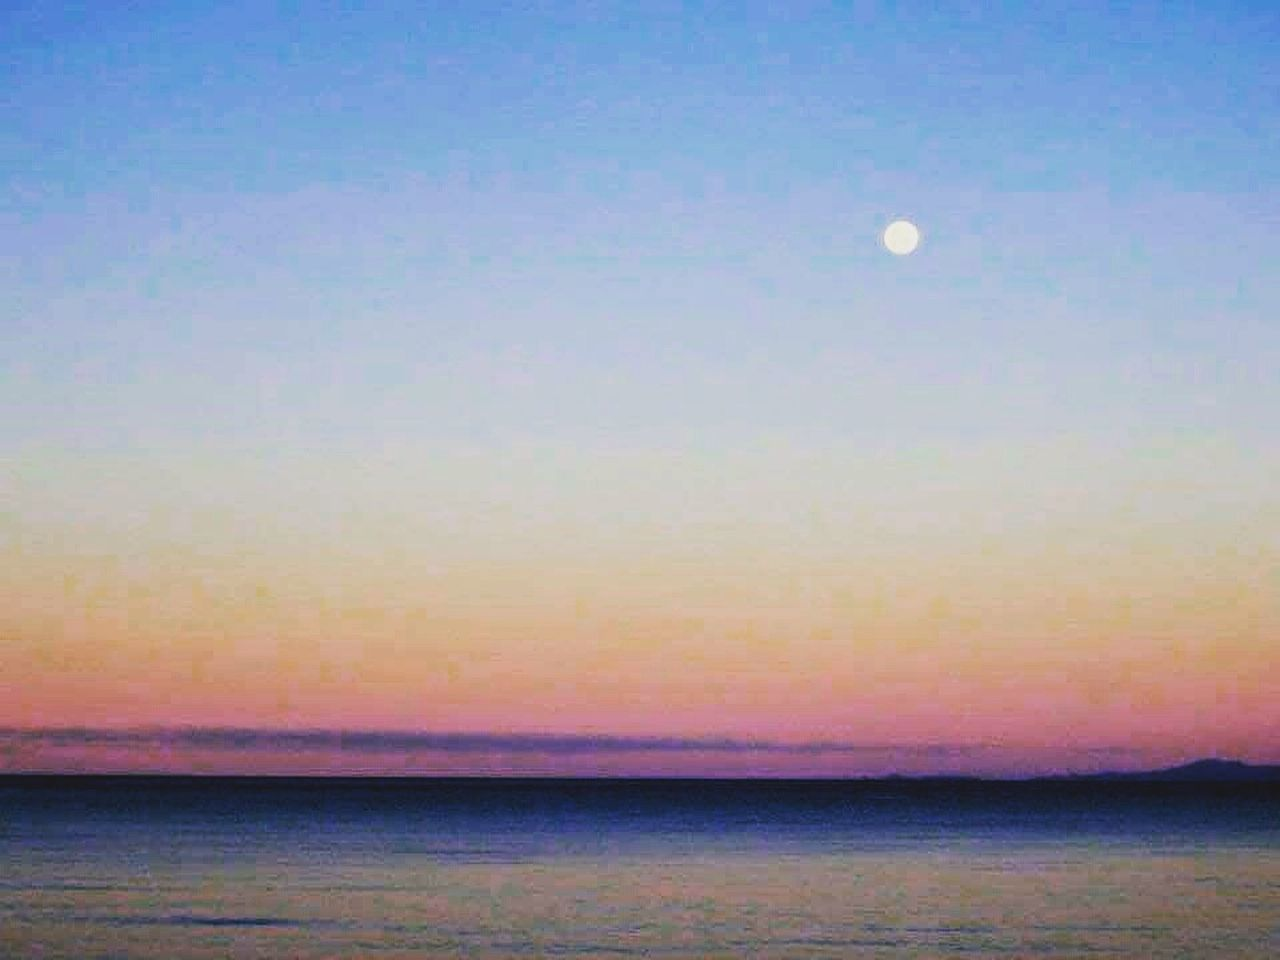 sea, sunset, scenics, tranquil scene, nature, beauty in nature, tranquility, sky, beach, water, idyllic, horizon over water, sun, outdoors, no people, moon